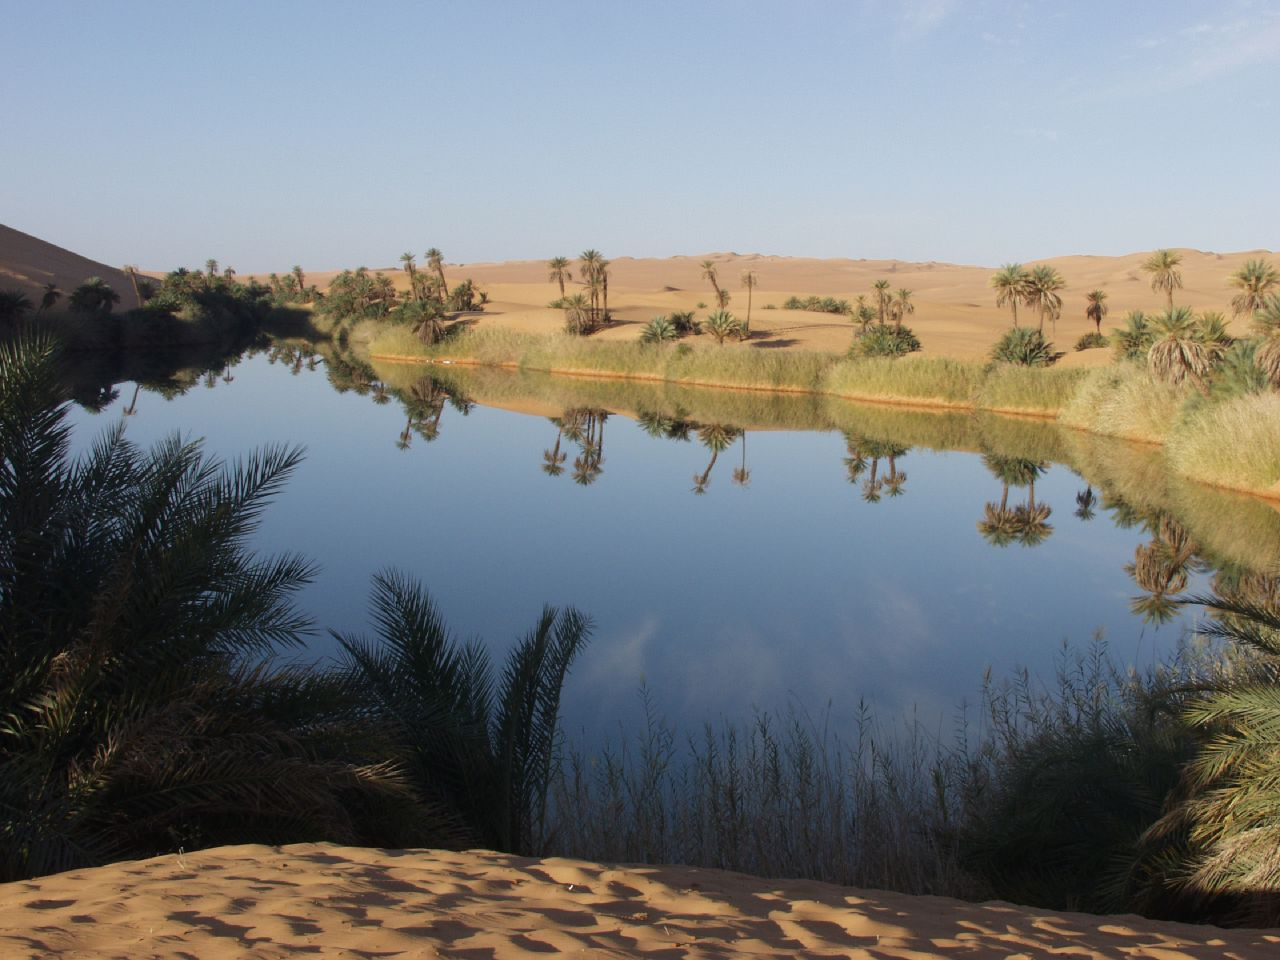 Oase in Libyen … <small>Quelle: https://secure.wikimedia.org/wikipedia/commons/wiki/File:The_Mandara_Lakes.jpg</small>